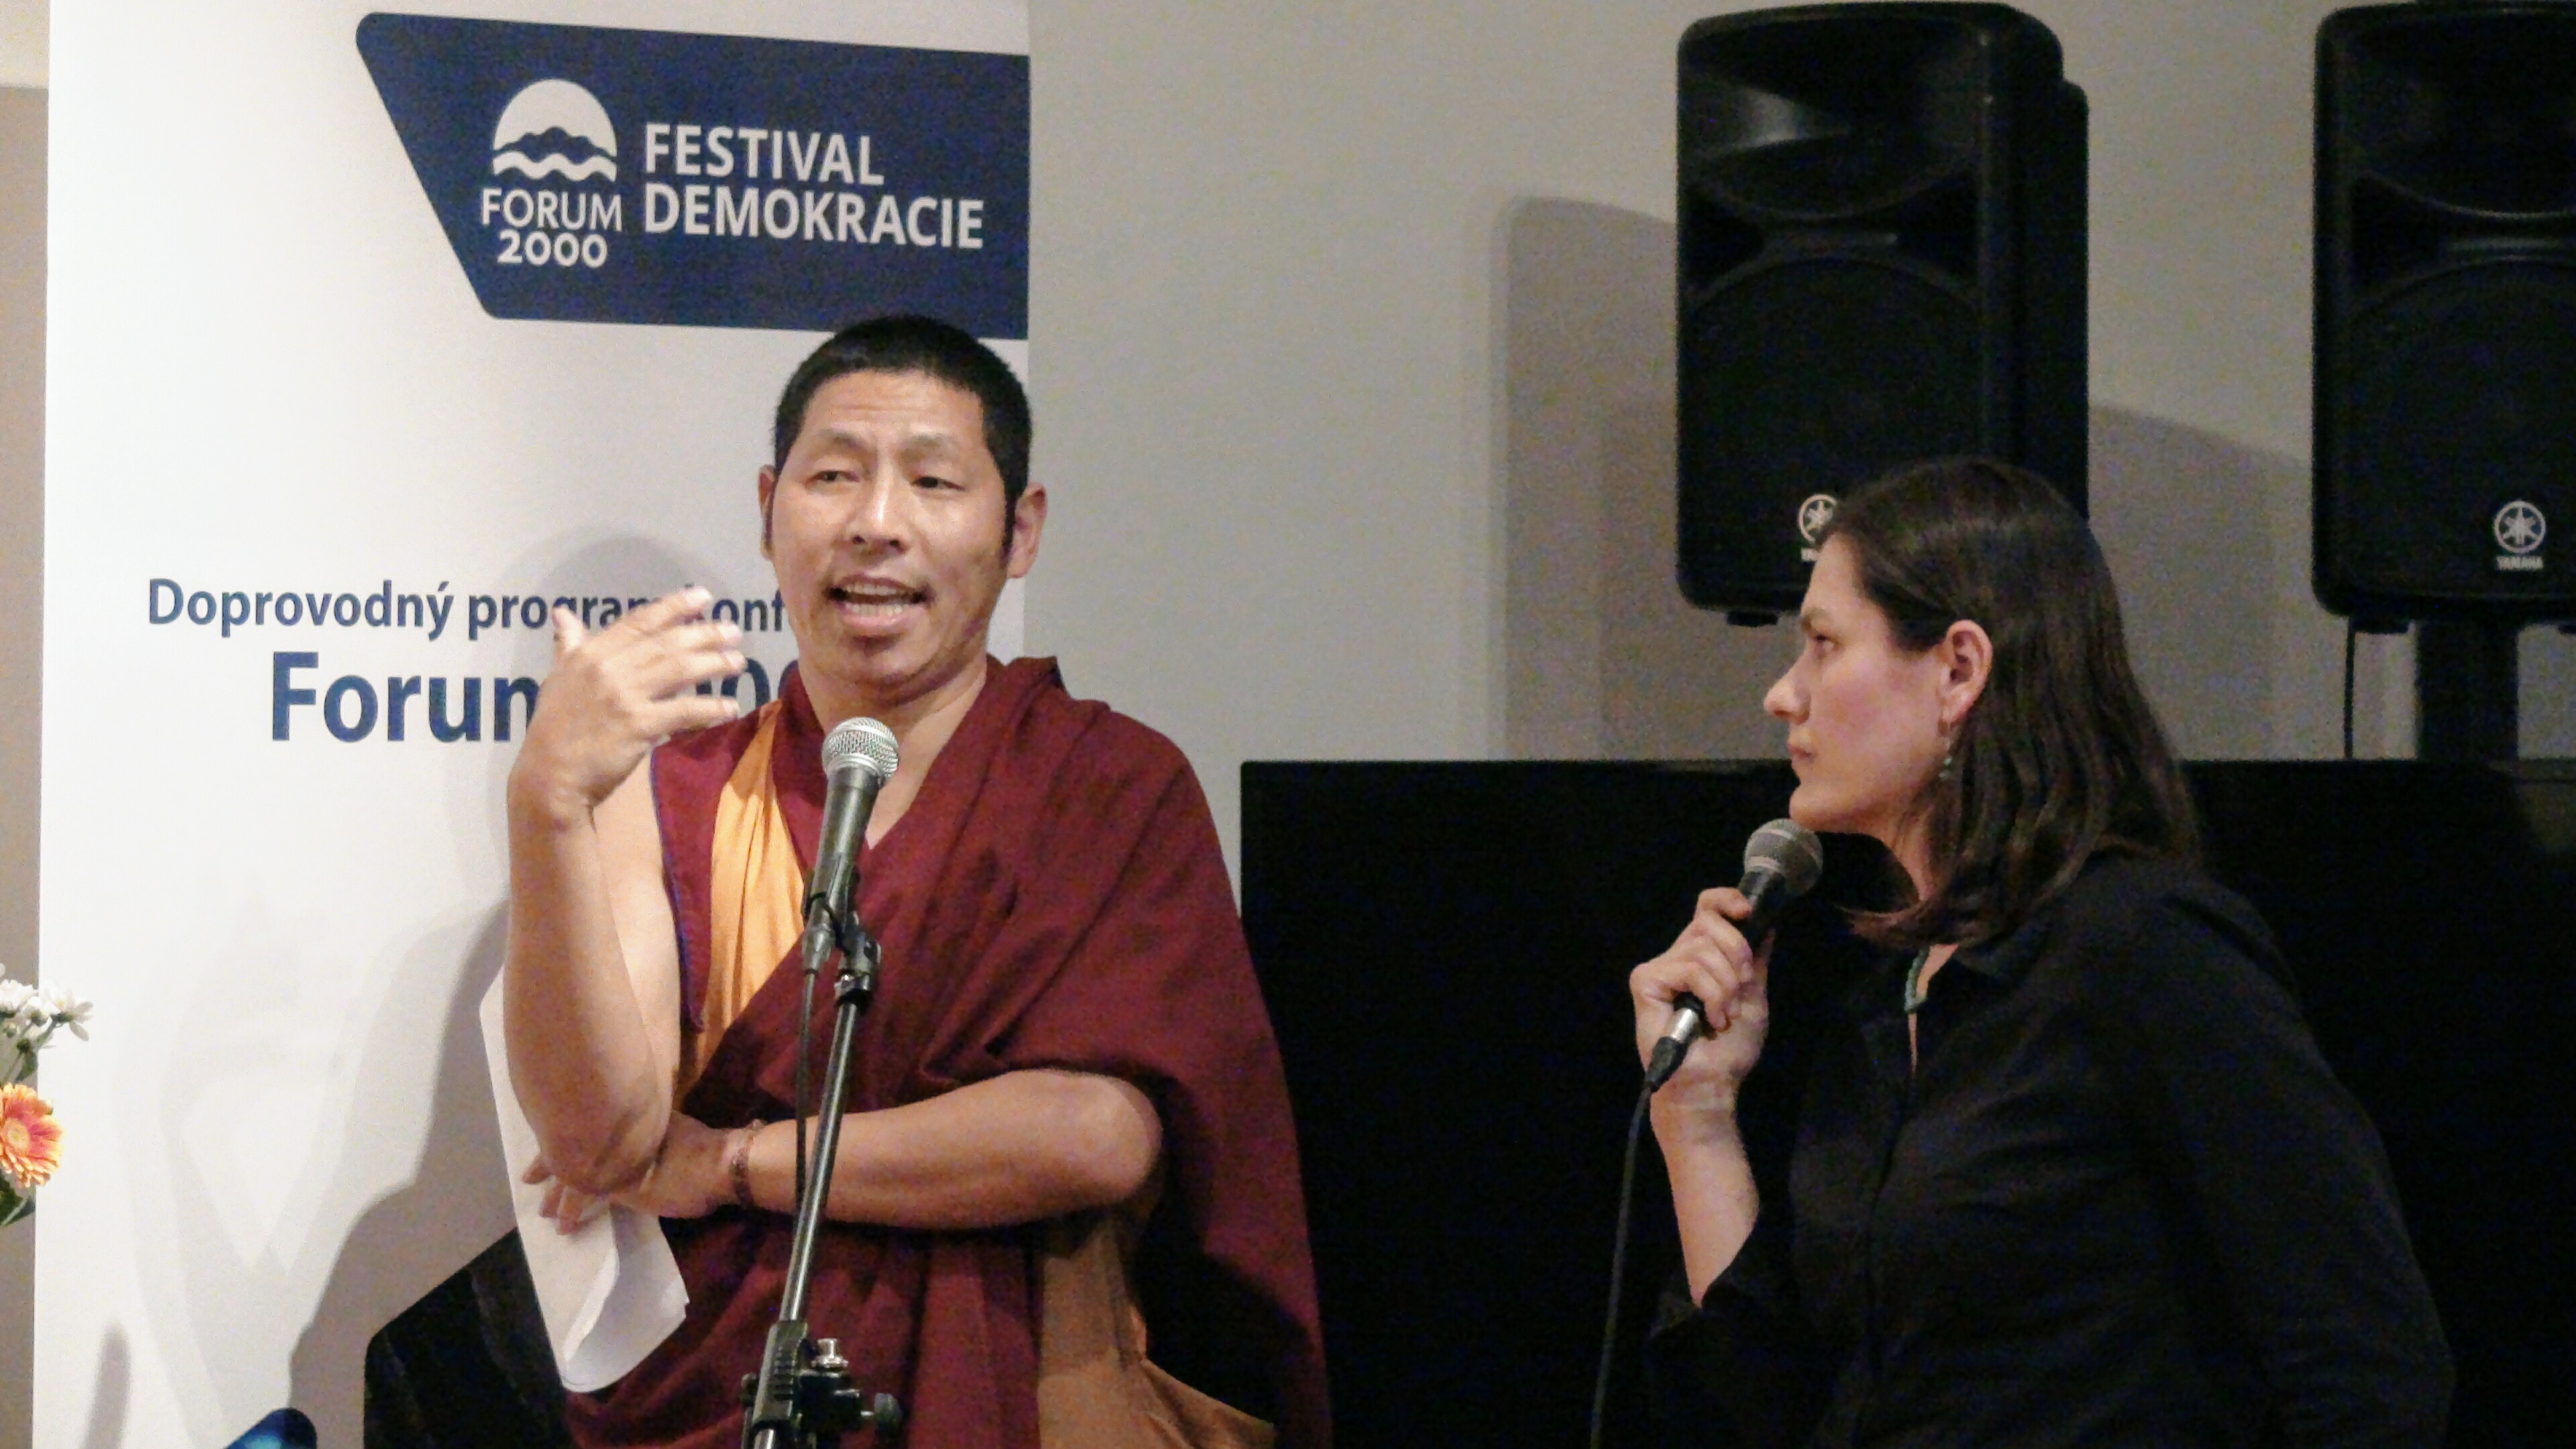 Festival of Democracy - Associated Program of the Forum 2000 Conference. Photo: Tibet Open House